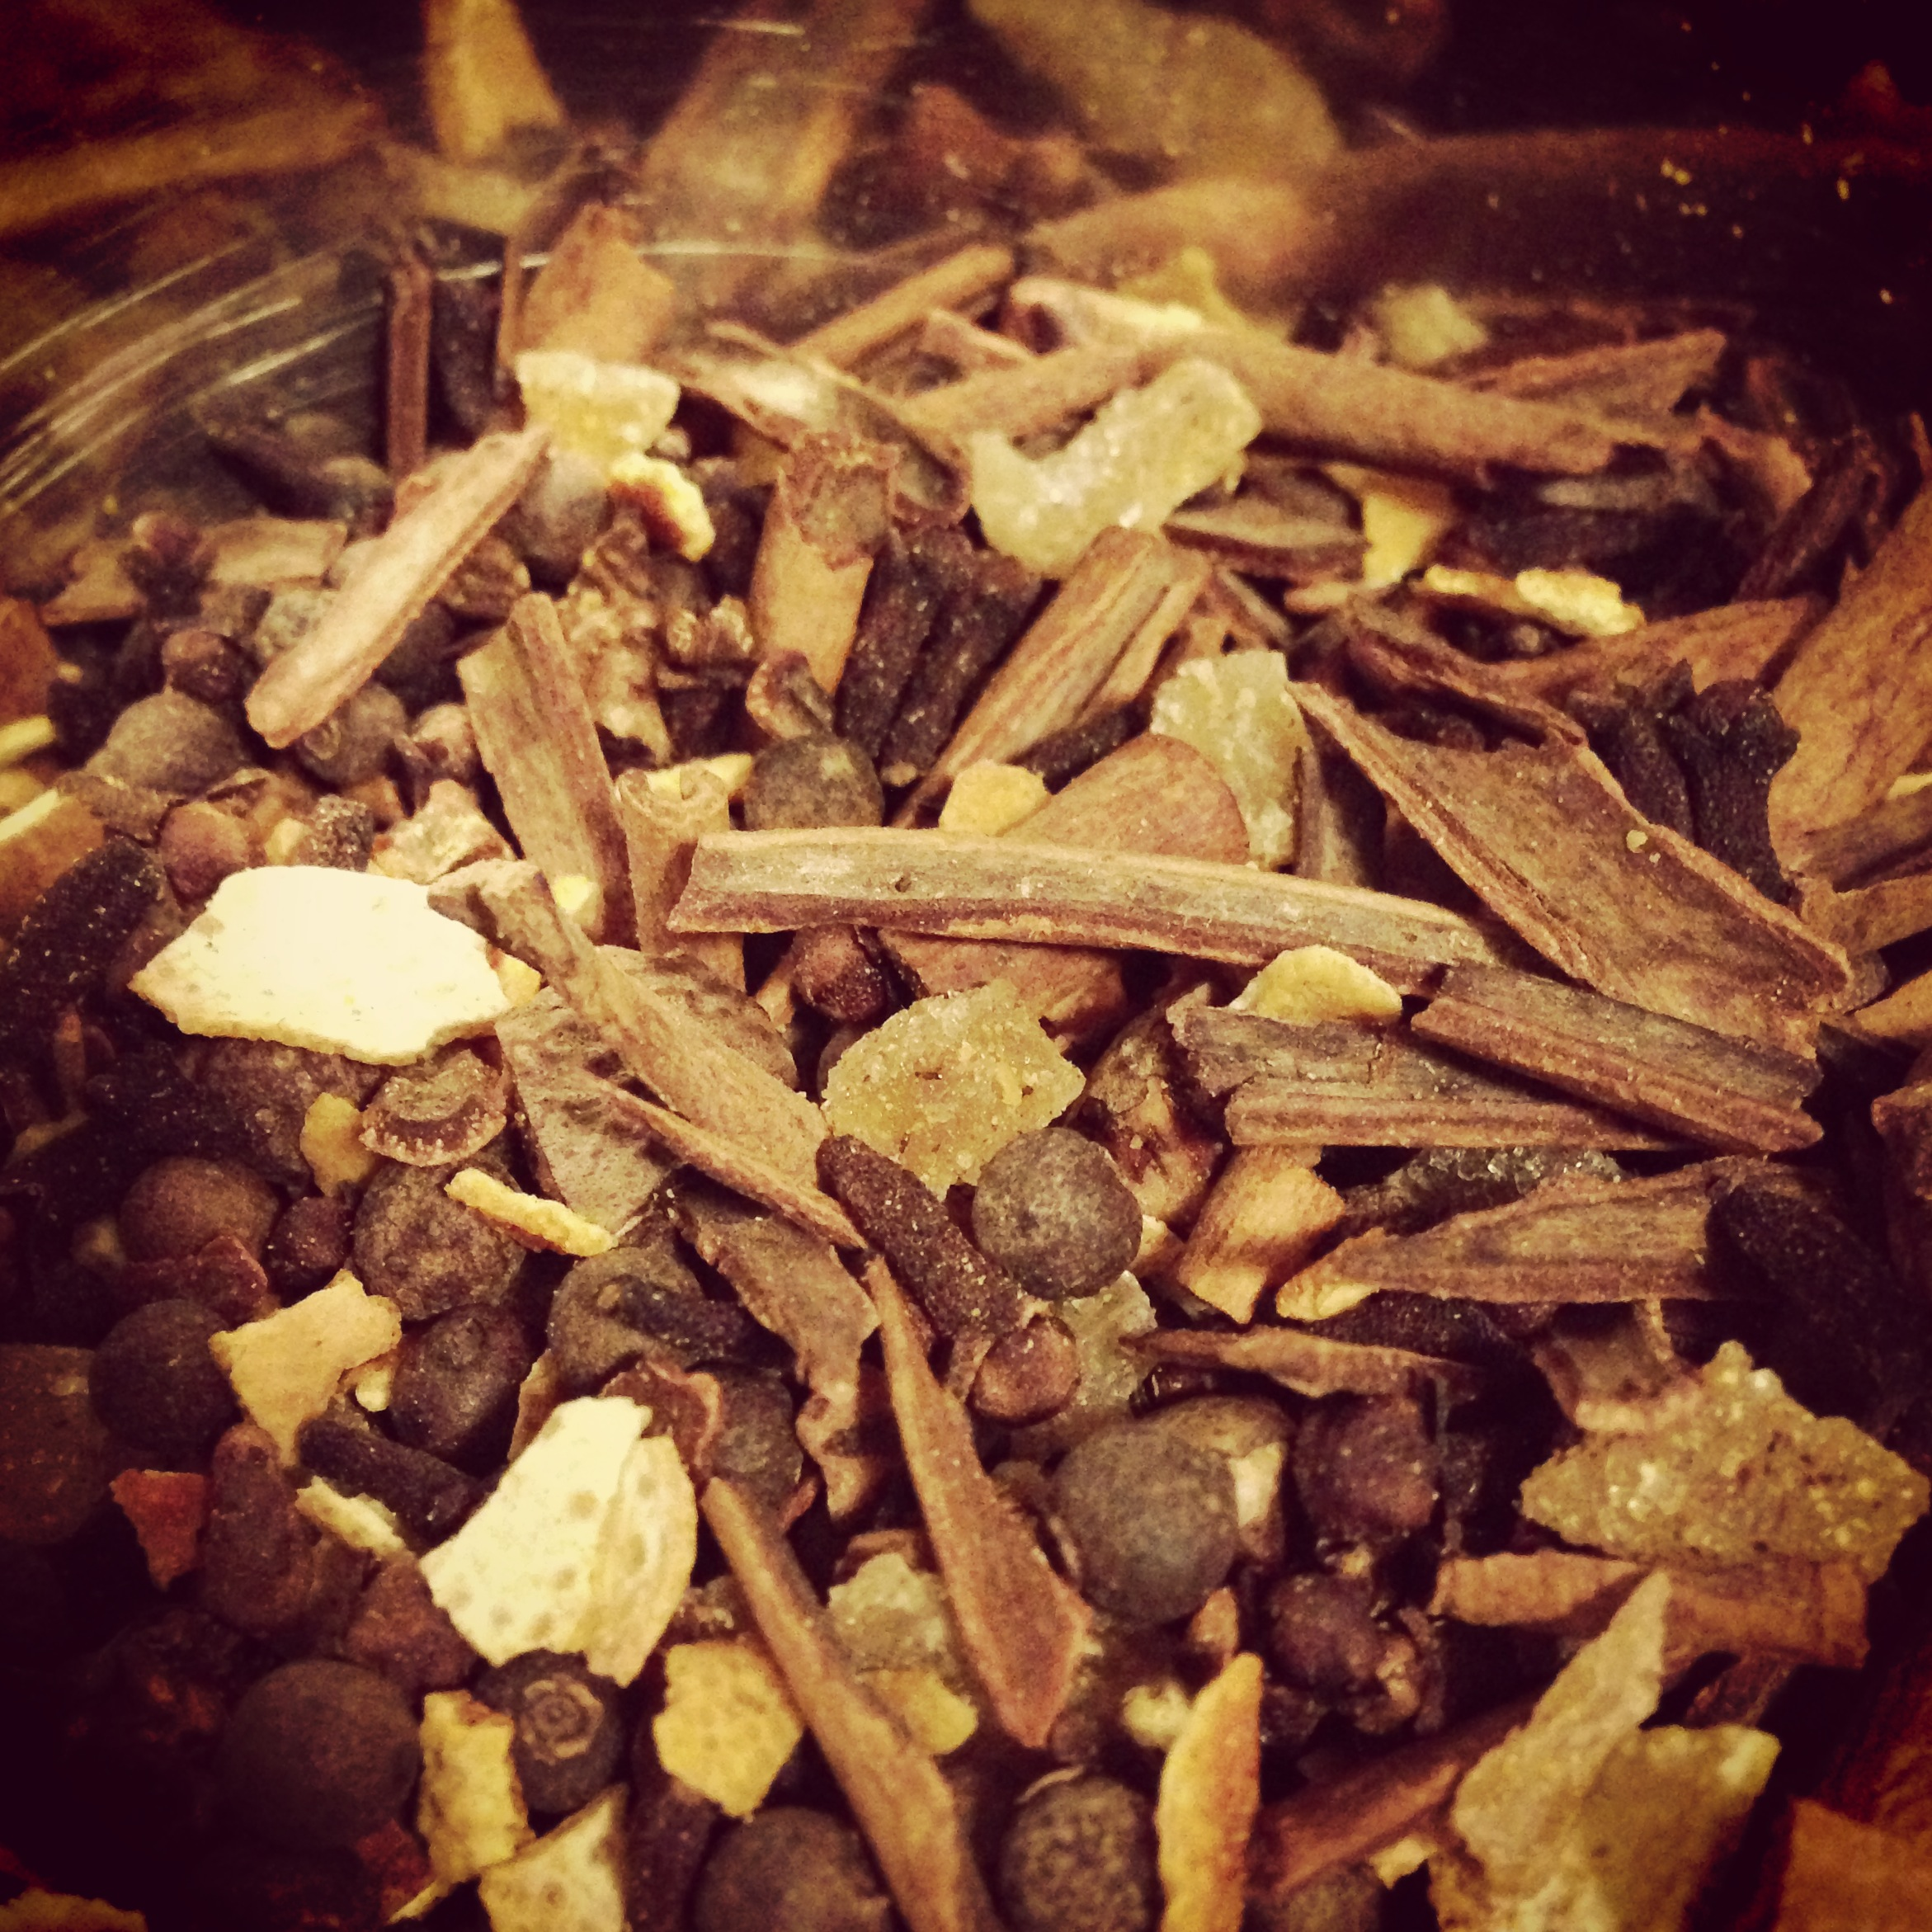 2012: Homemade mulling spices